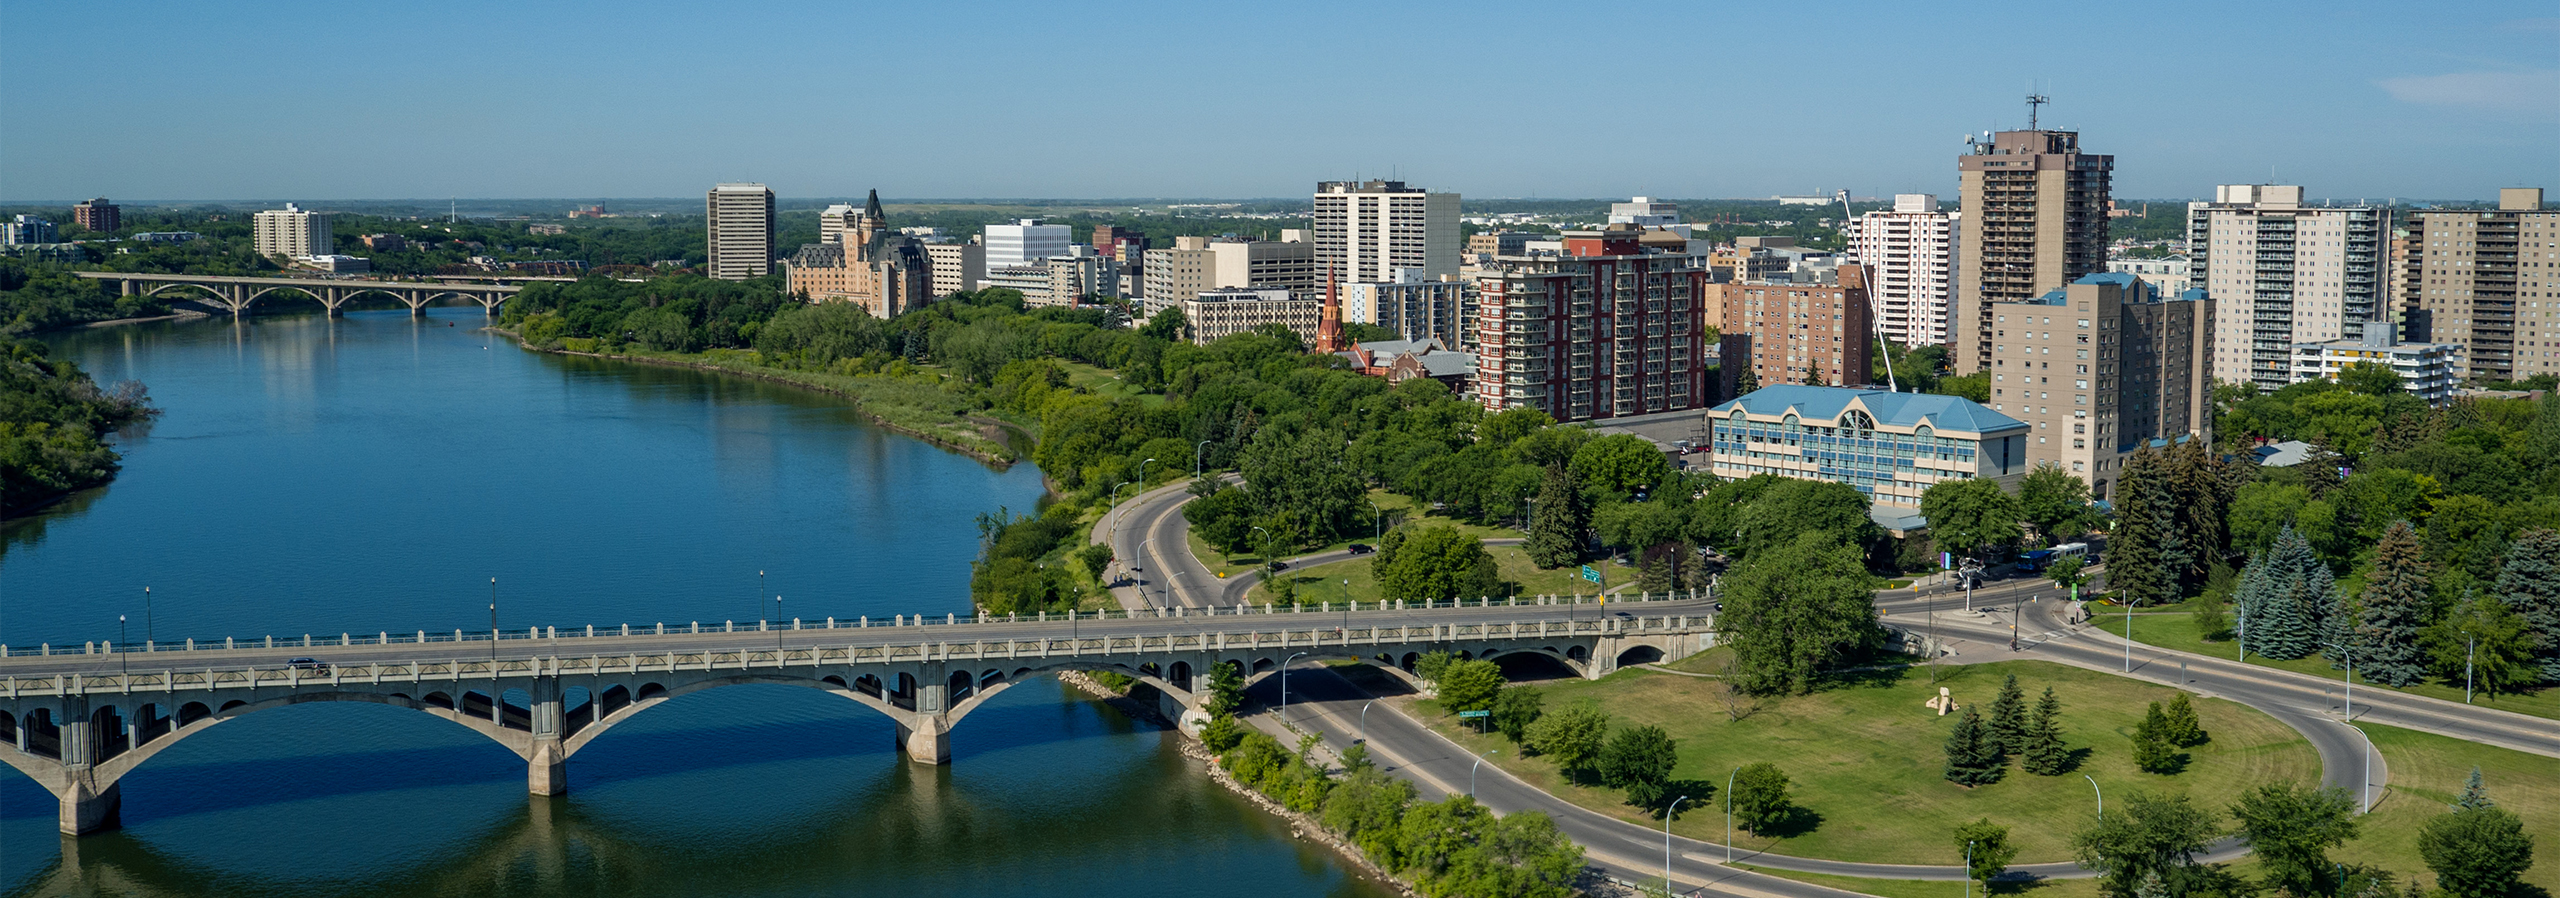 Welcome to Saskatoon | Hotels, Restaurants, & Things To Do